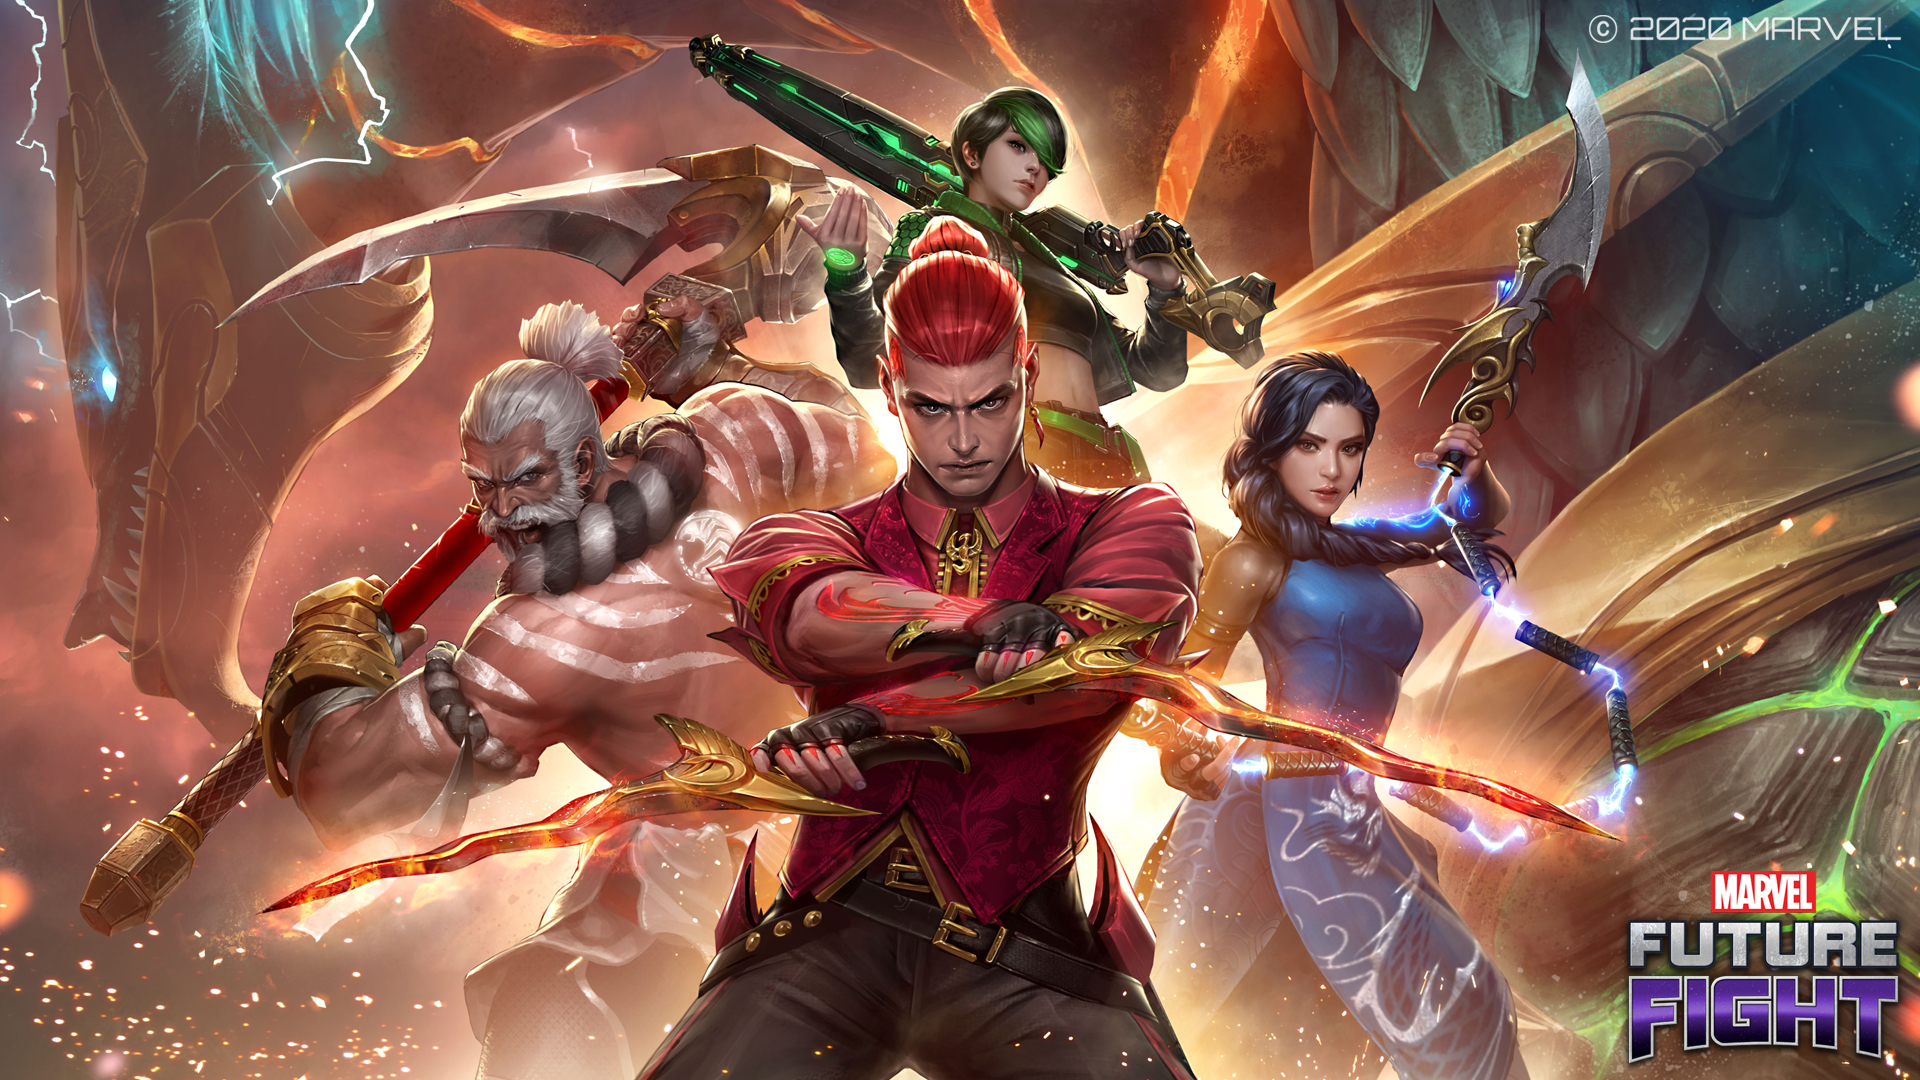 Marvel Future Fight Pa Twitter Take The Warriors Of The Sky With